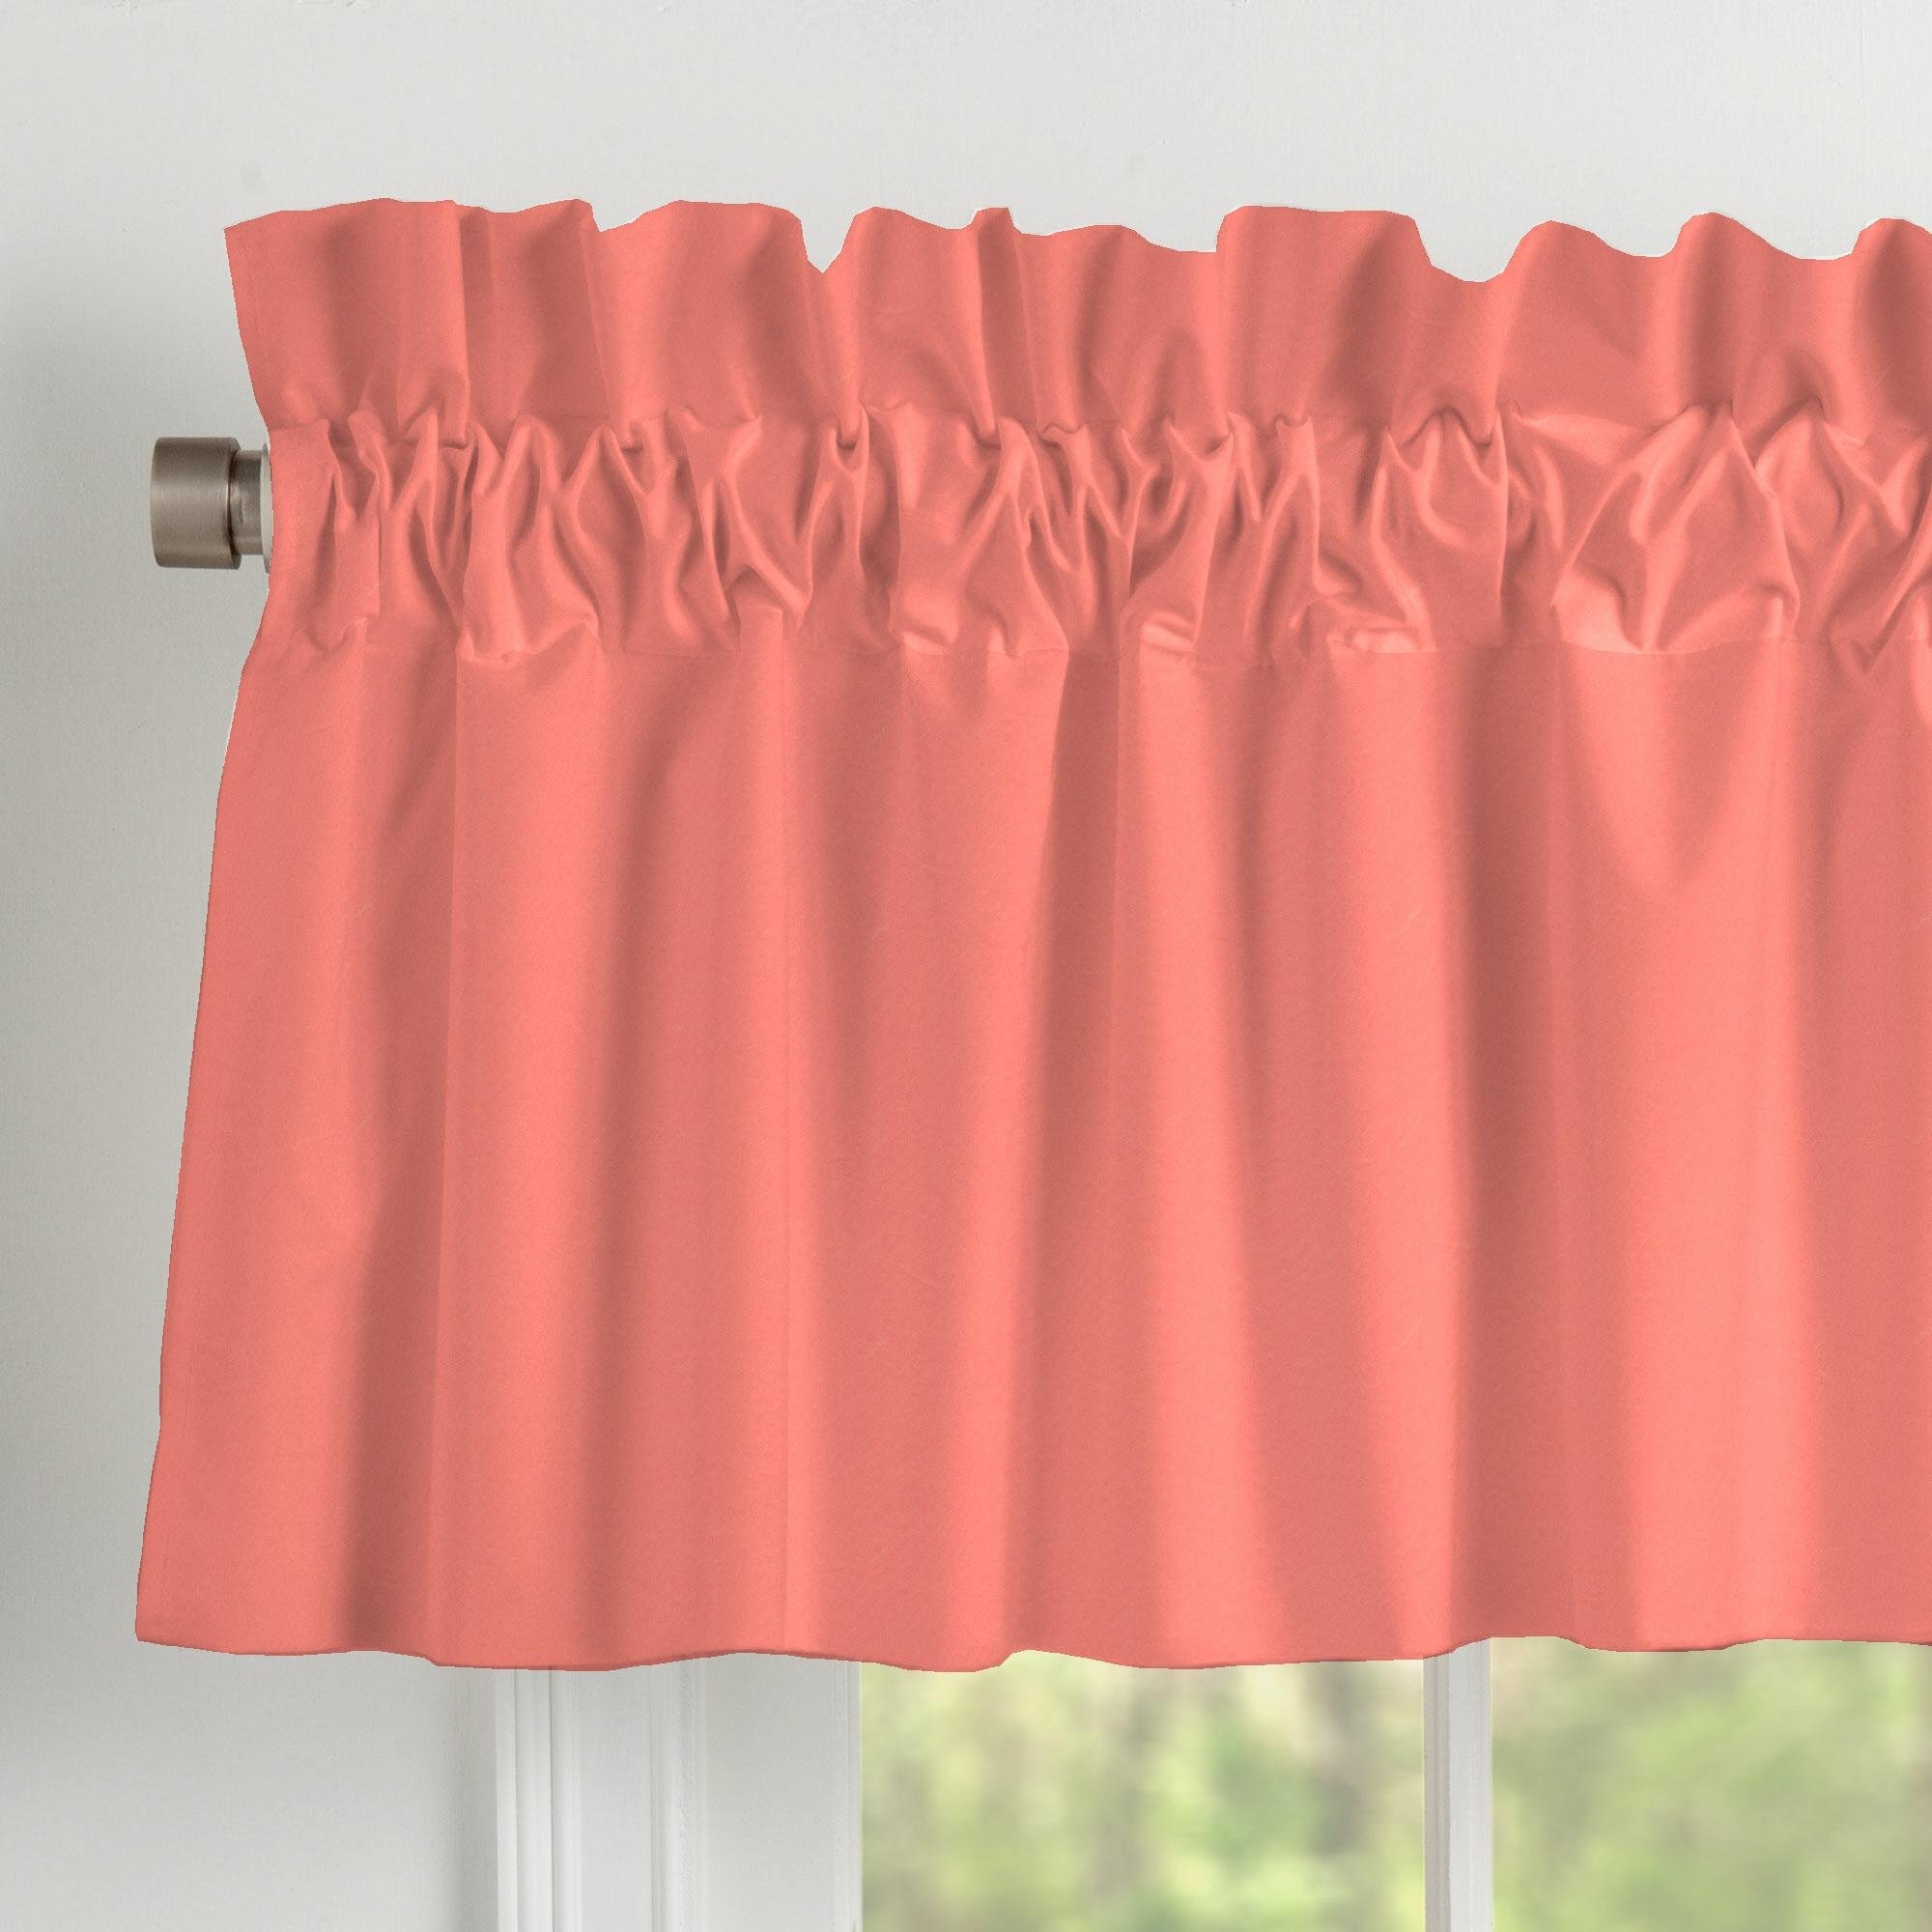 Carousel Designs Solid Coral Window Valance Rod Pocket